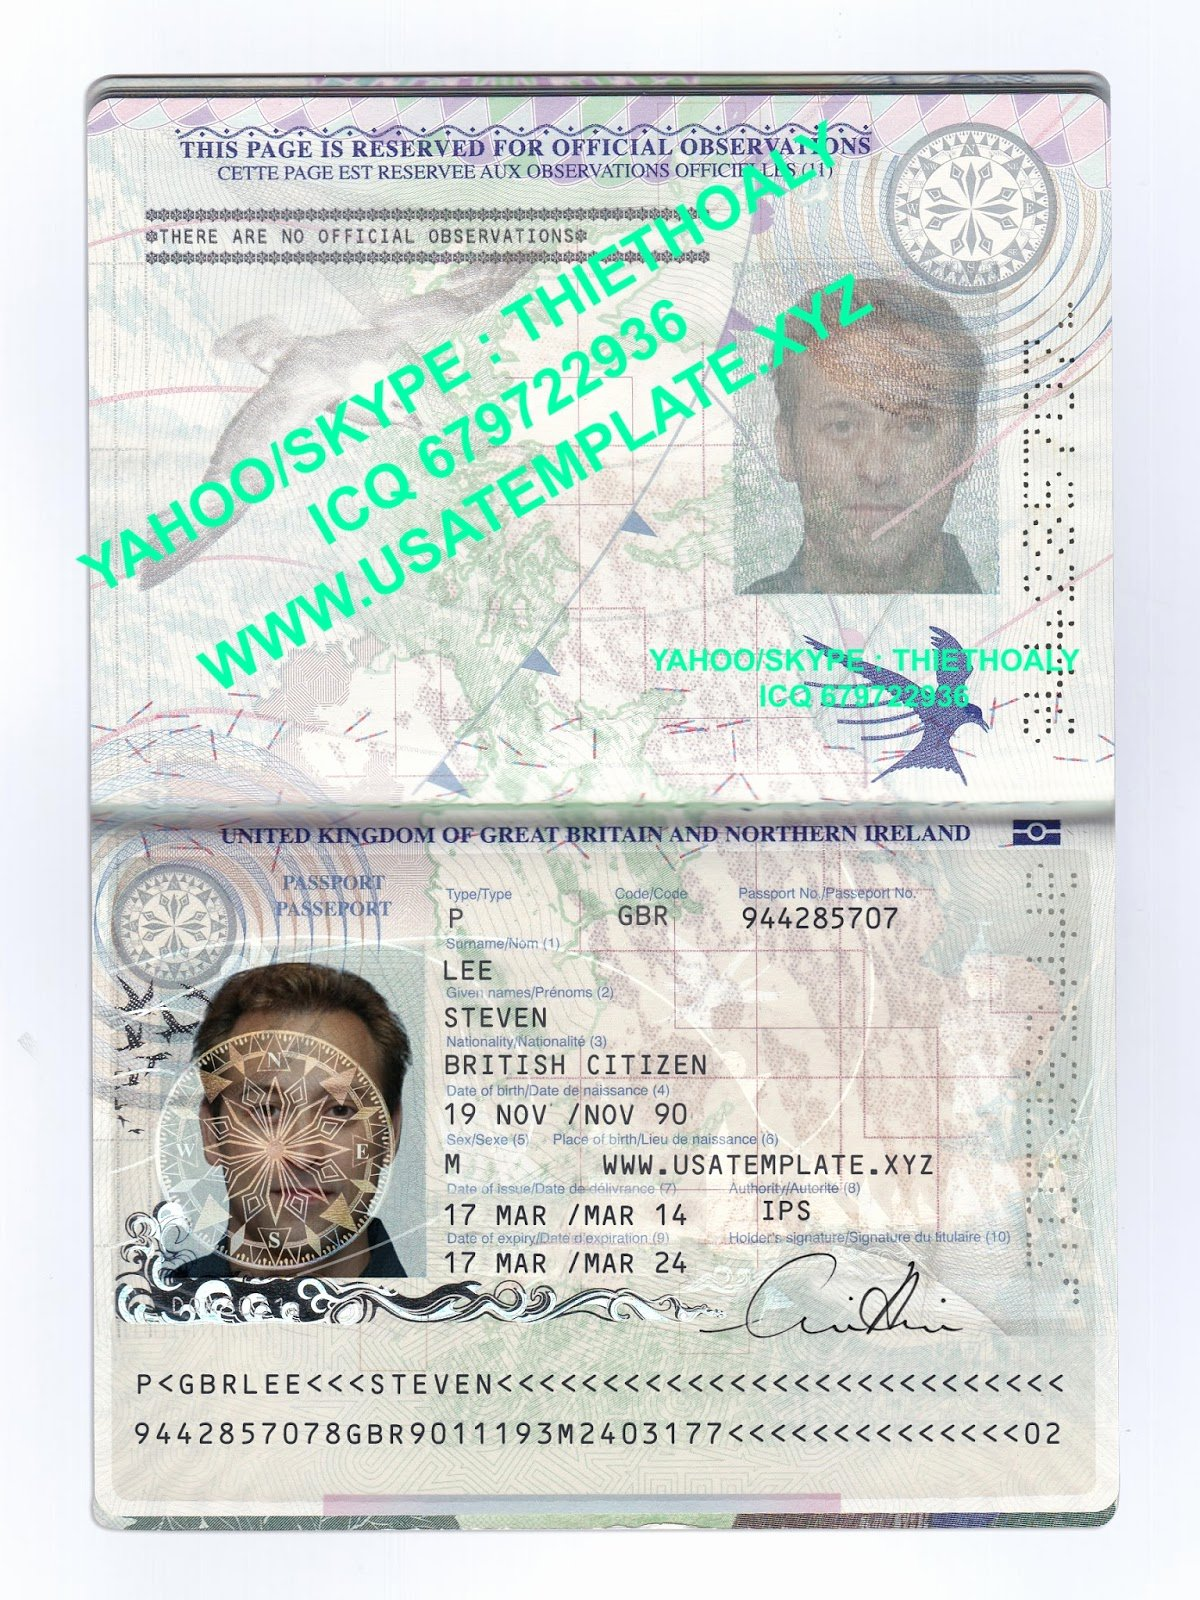 Passport Photo Template Psd Beautiful Passport Psd Images Usseek